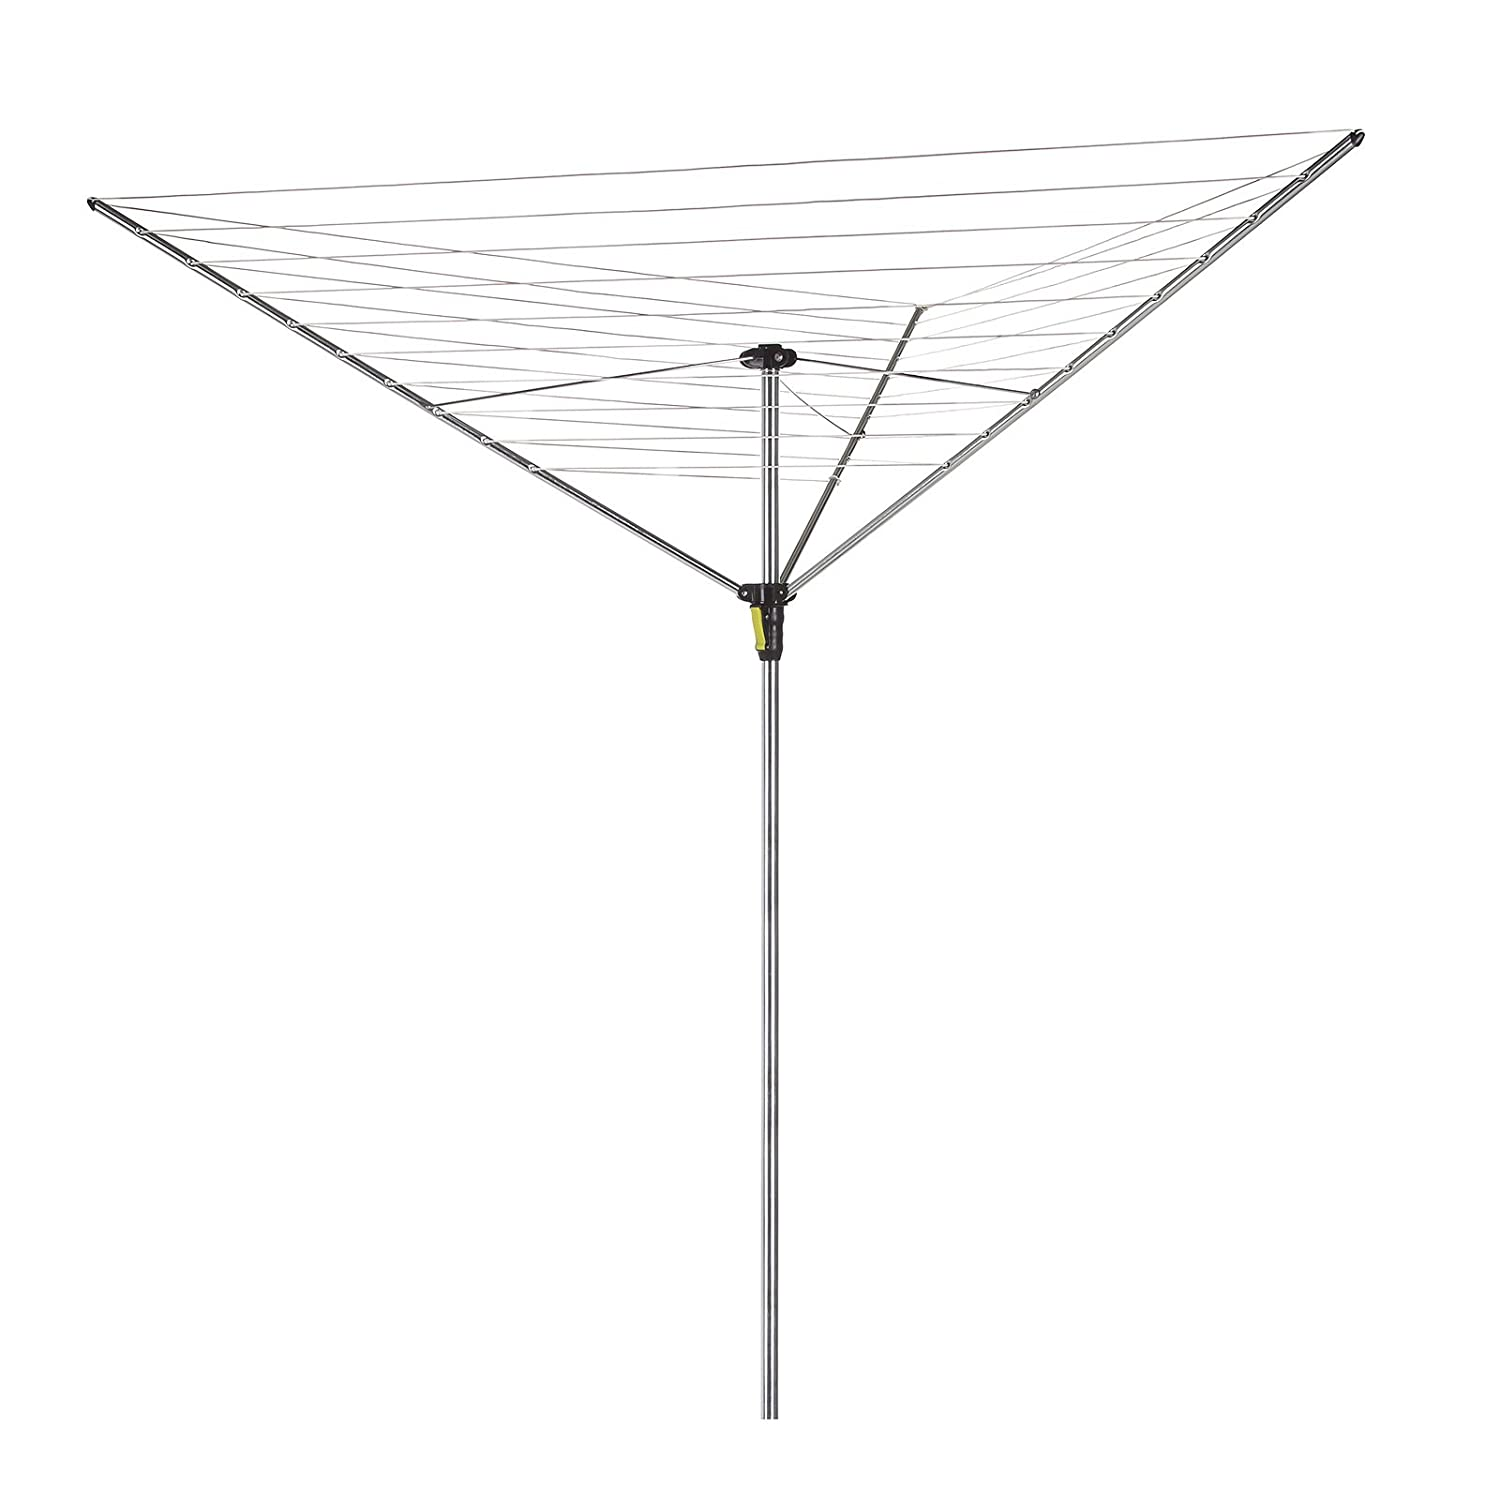 Minky Extra Breeze 40m, 3 arm, Rotary Airer QQ84290100